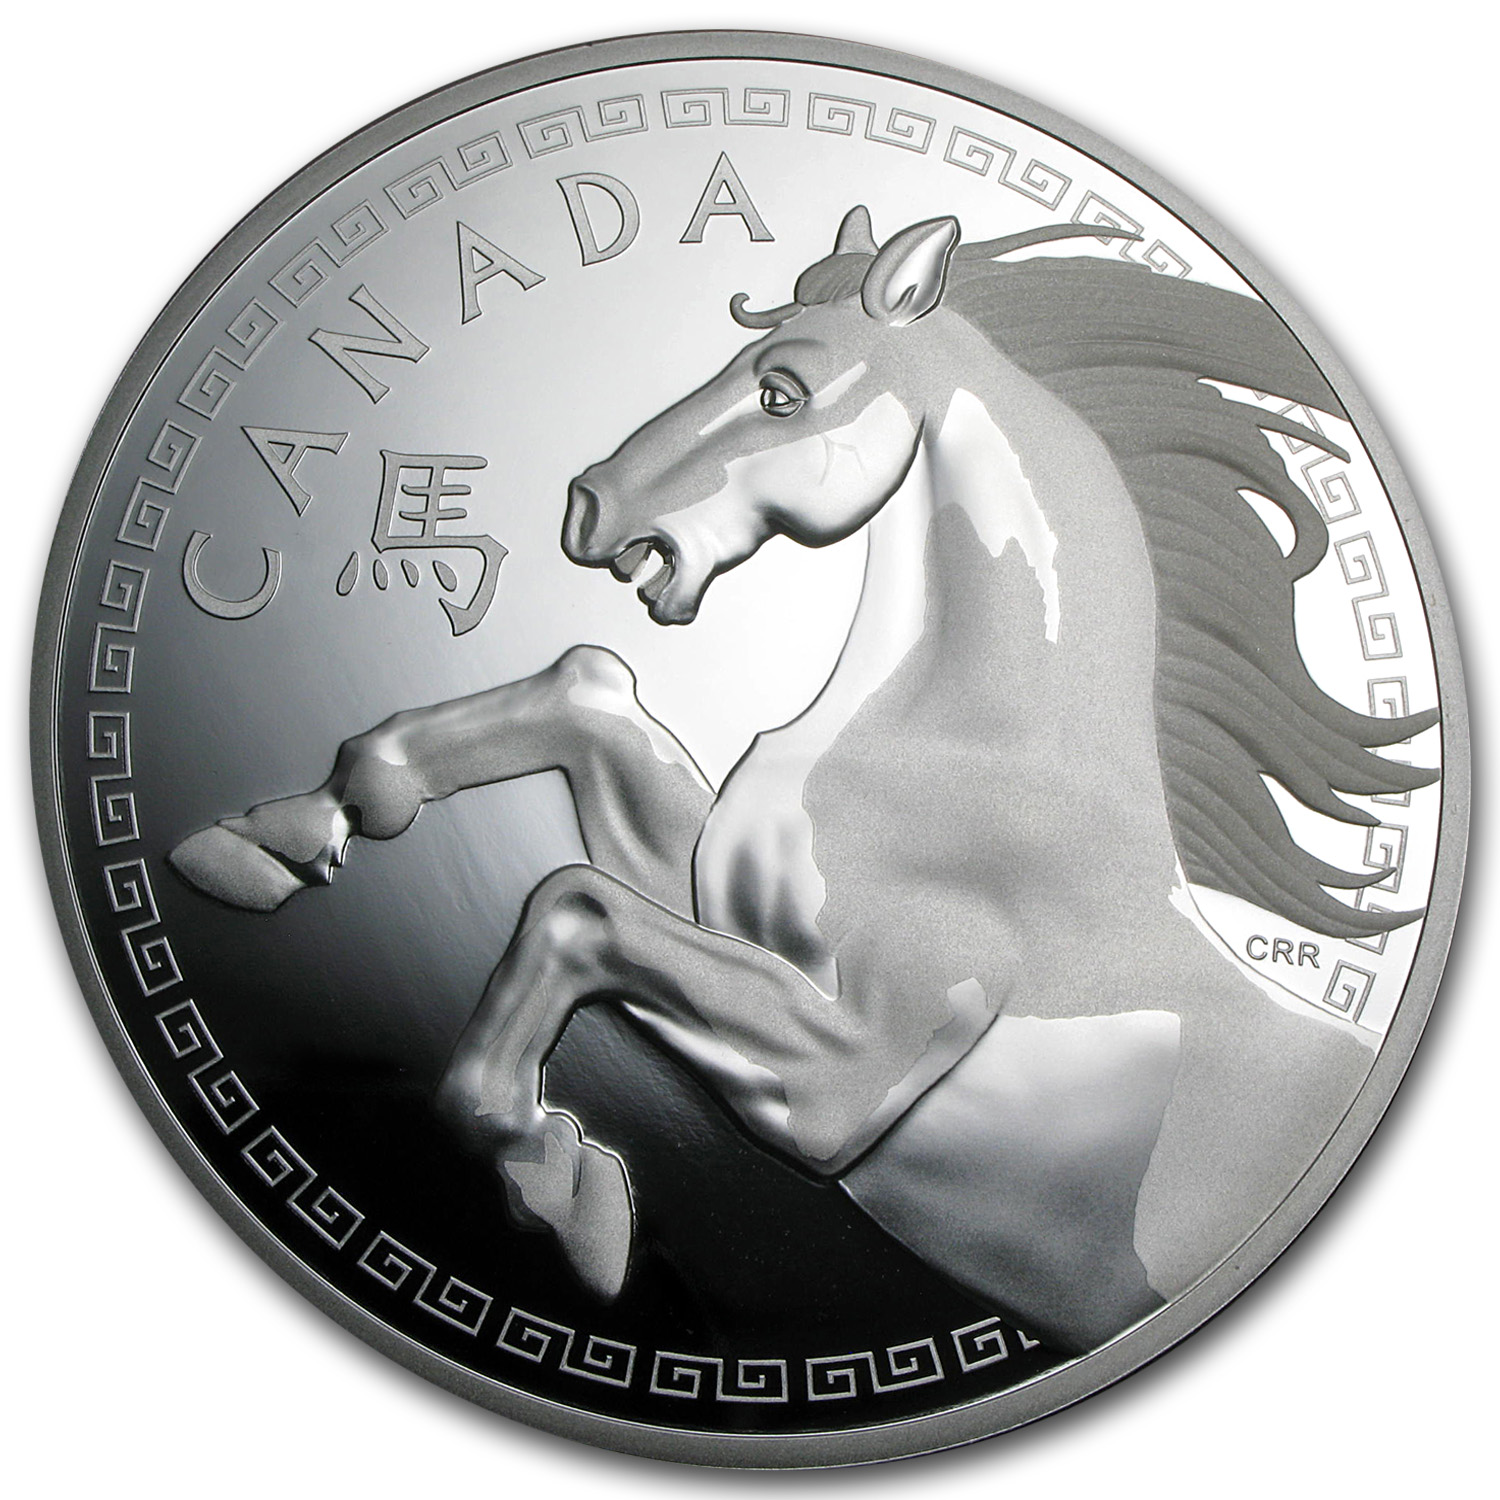 2014 Canada 1 kilo Silver $250 Lunar Year of the Horse Proof